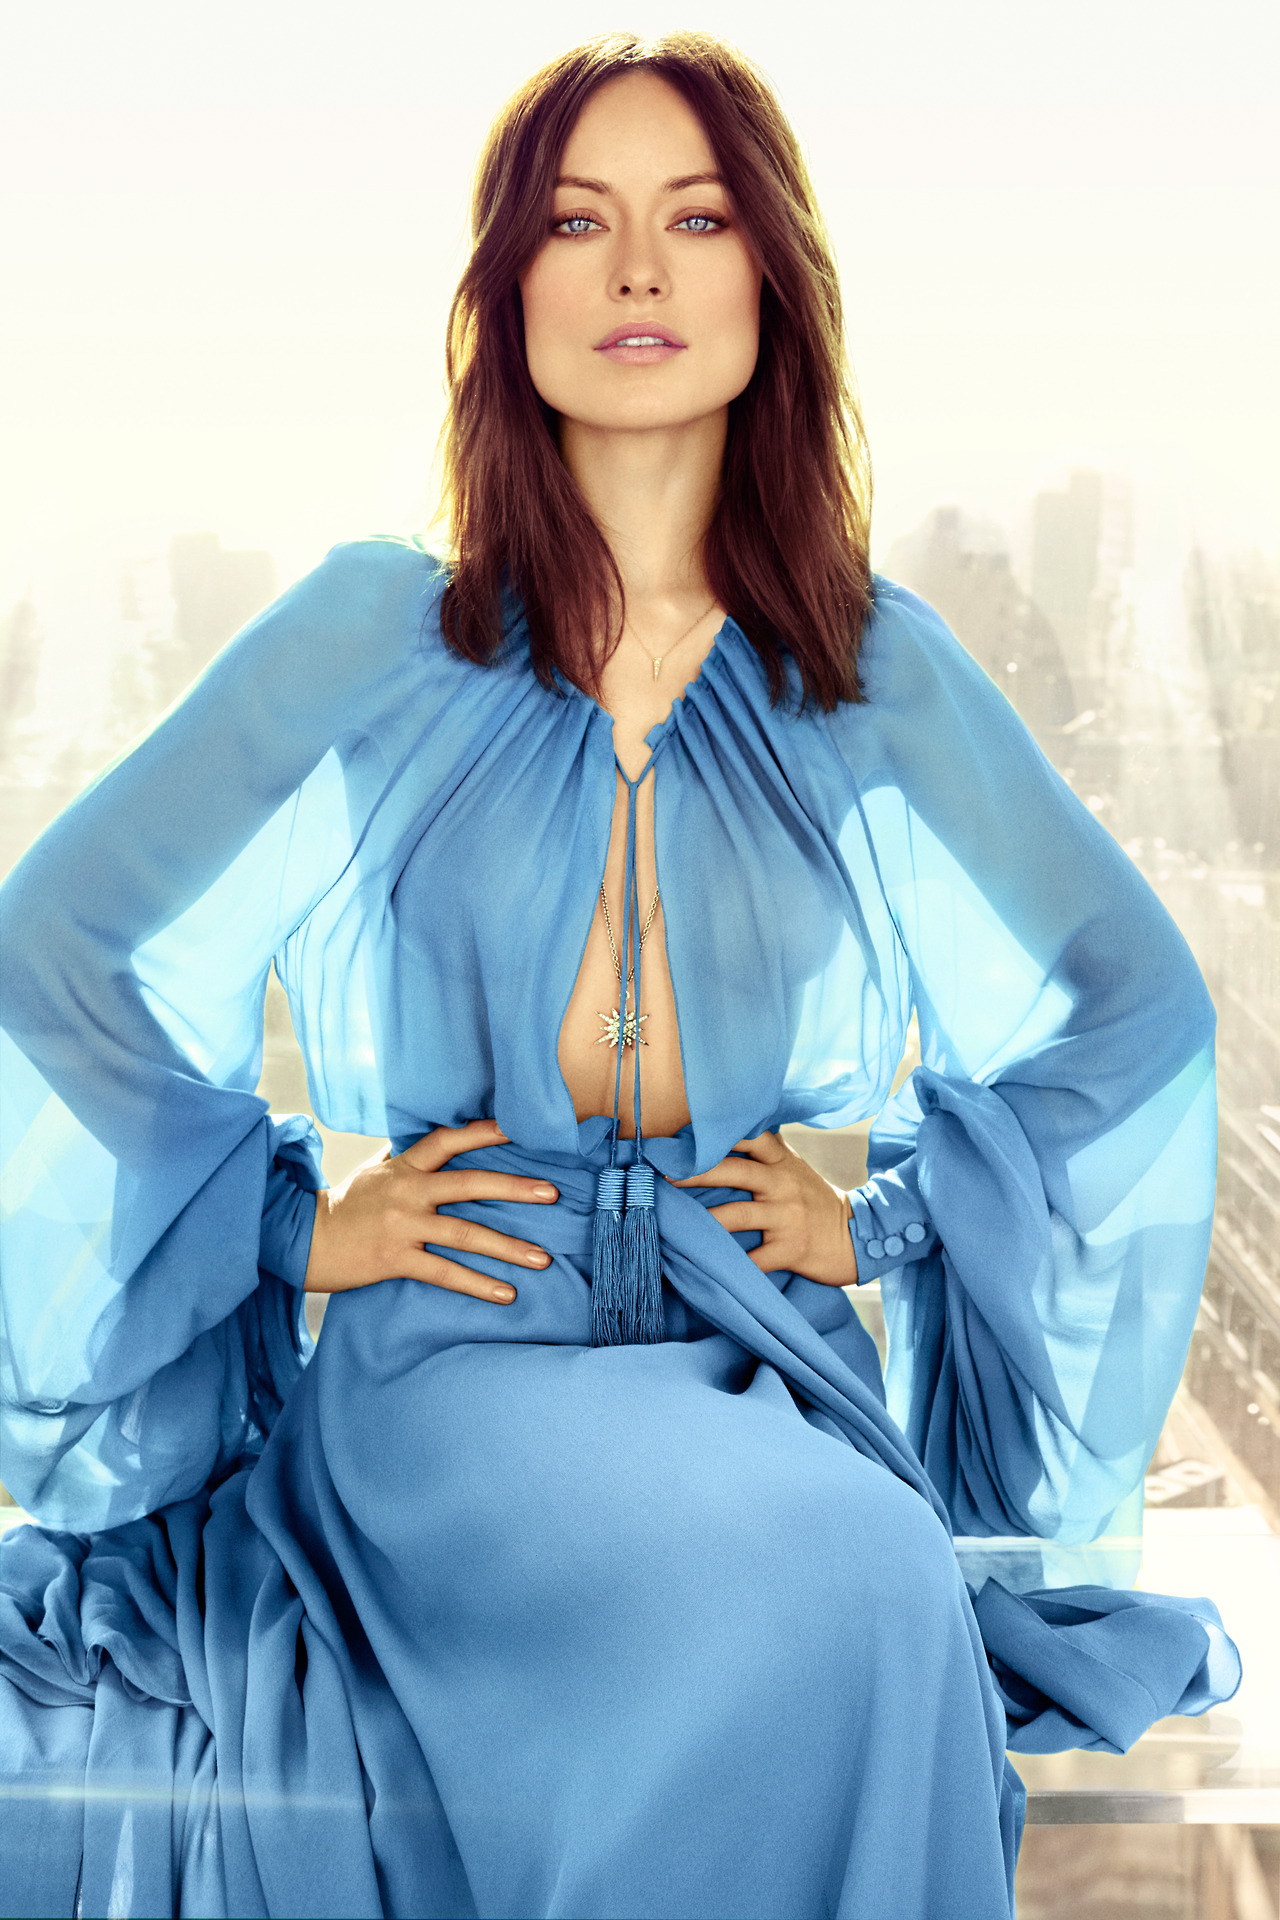 Olivia Wilde Profile And New Pictures 2013: Lucerne Wiki